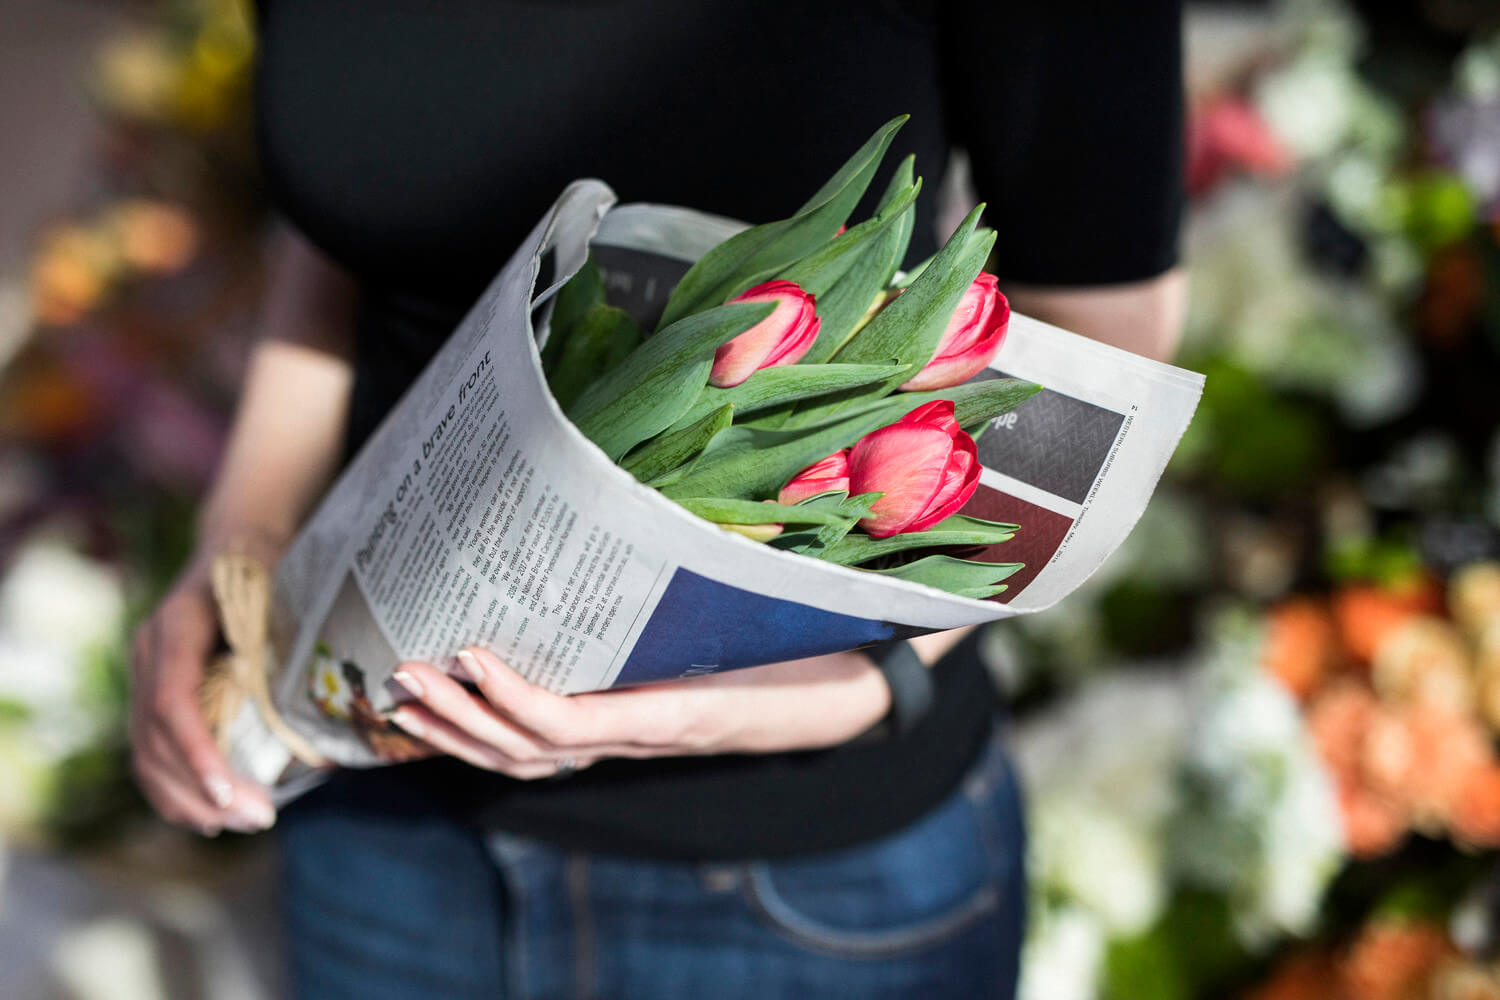 Lady holding flowers wrapped in newspaper